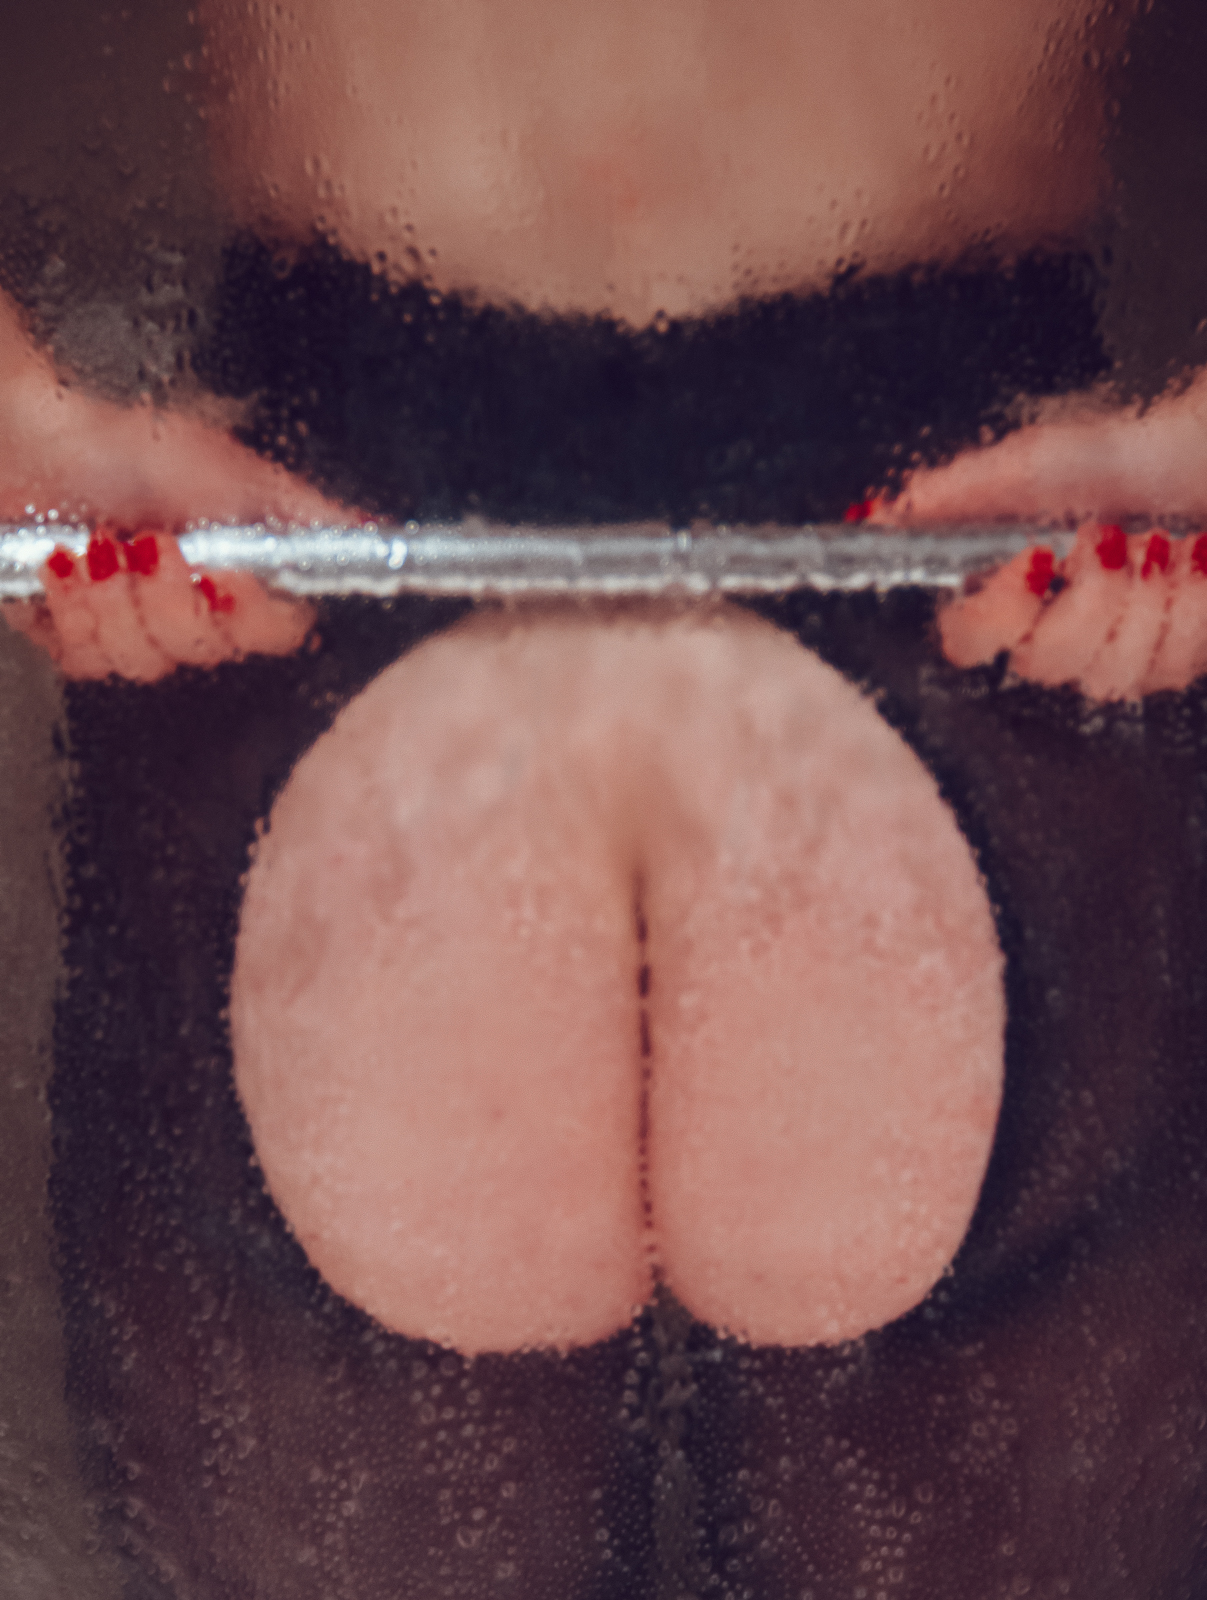 a close-up, soft focus portrait of author Caroline Reilly's buttock holding the bar in her shower